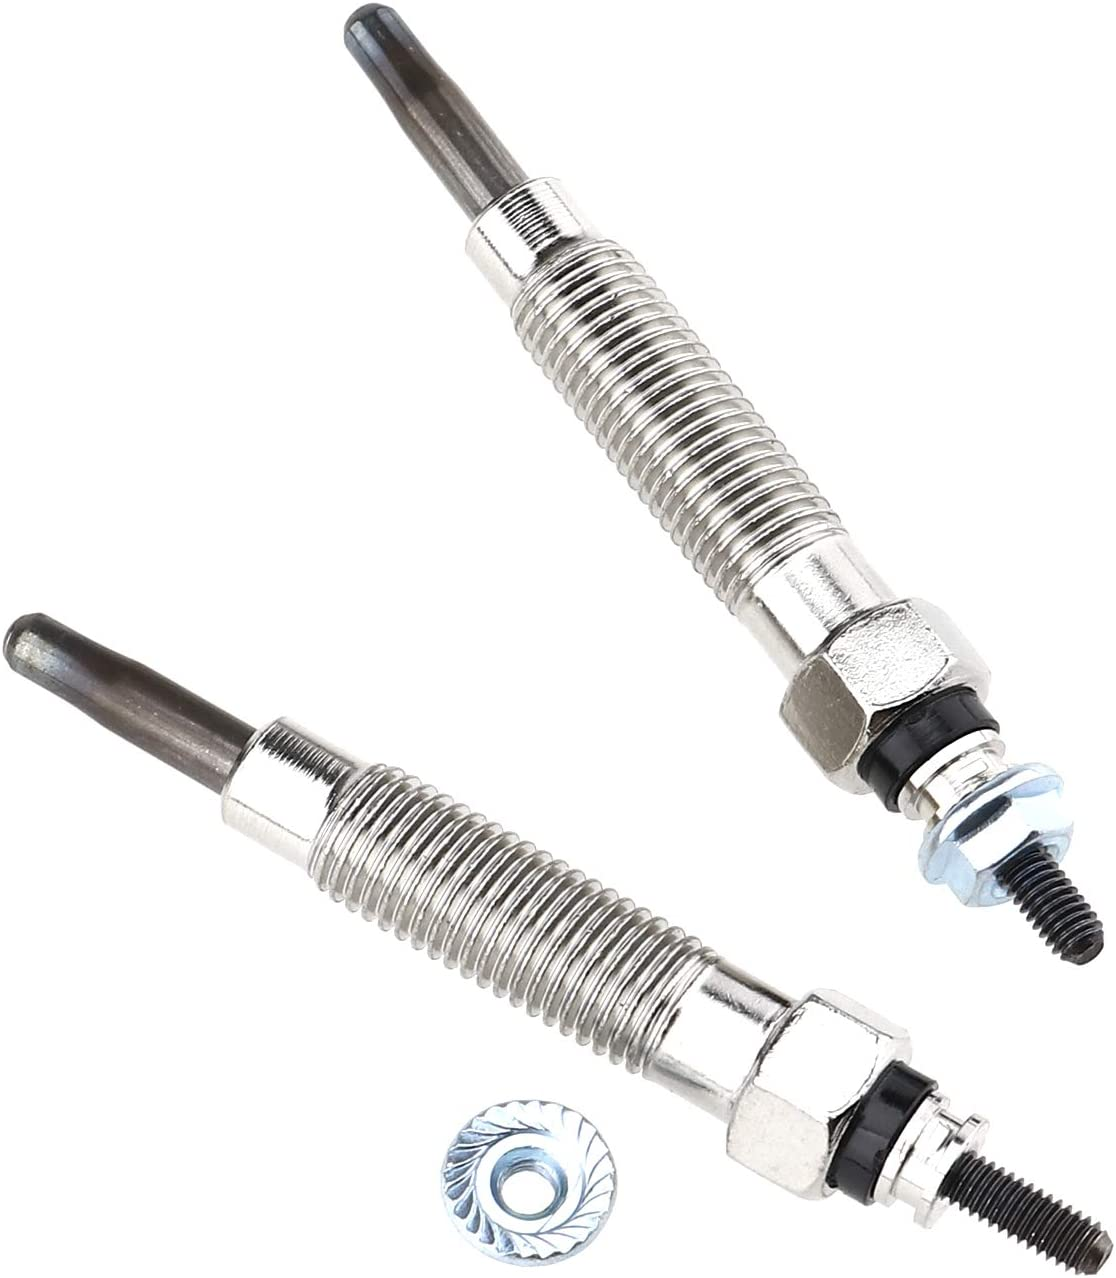 Diesel Glow Plug Aluminum Alloy Dual Core Heater Glow Plugs Compatible with Mitsubishi Challenger L200 L300 2.5 D